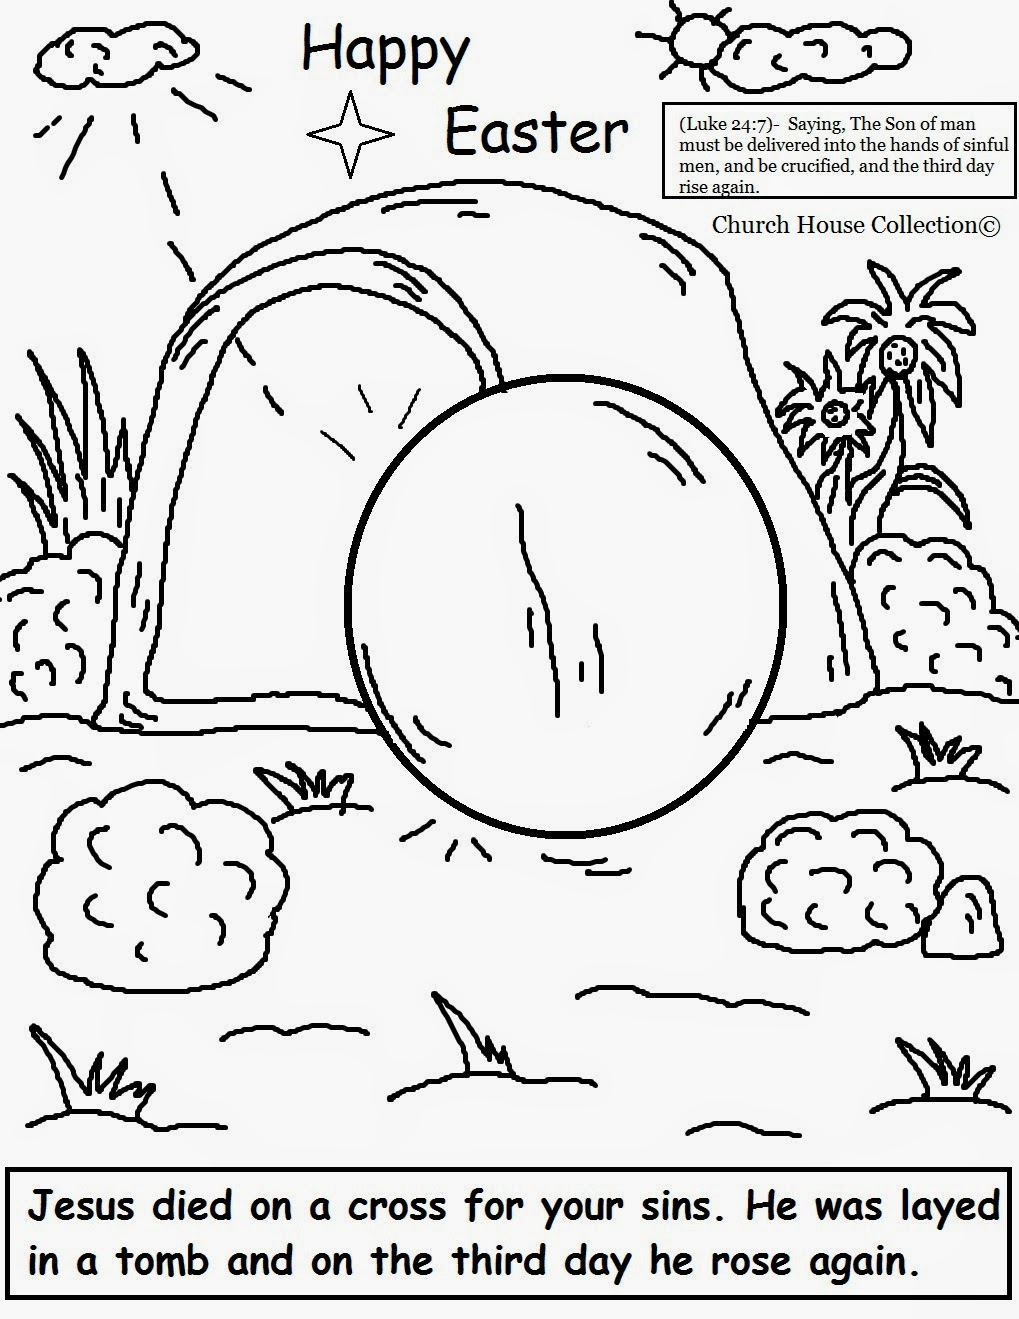 church house collection blog easter jesus resurrection coloring pages